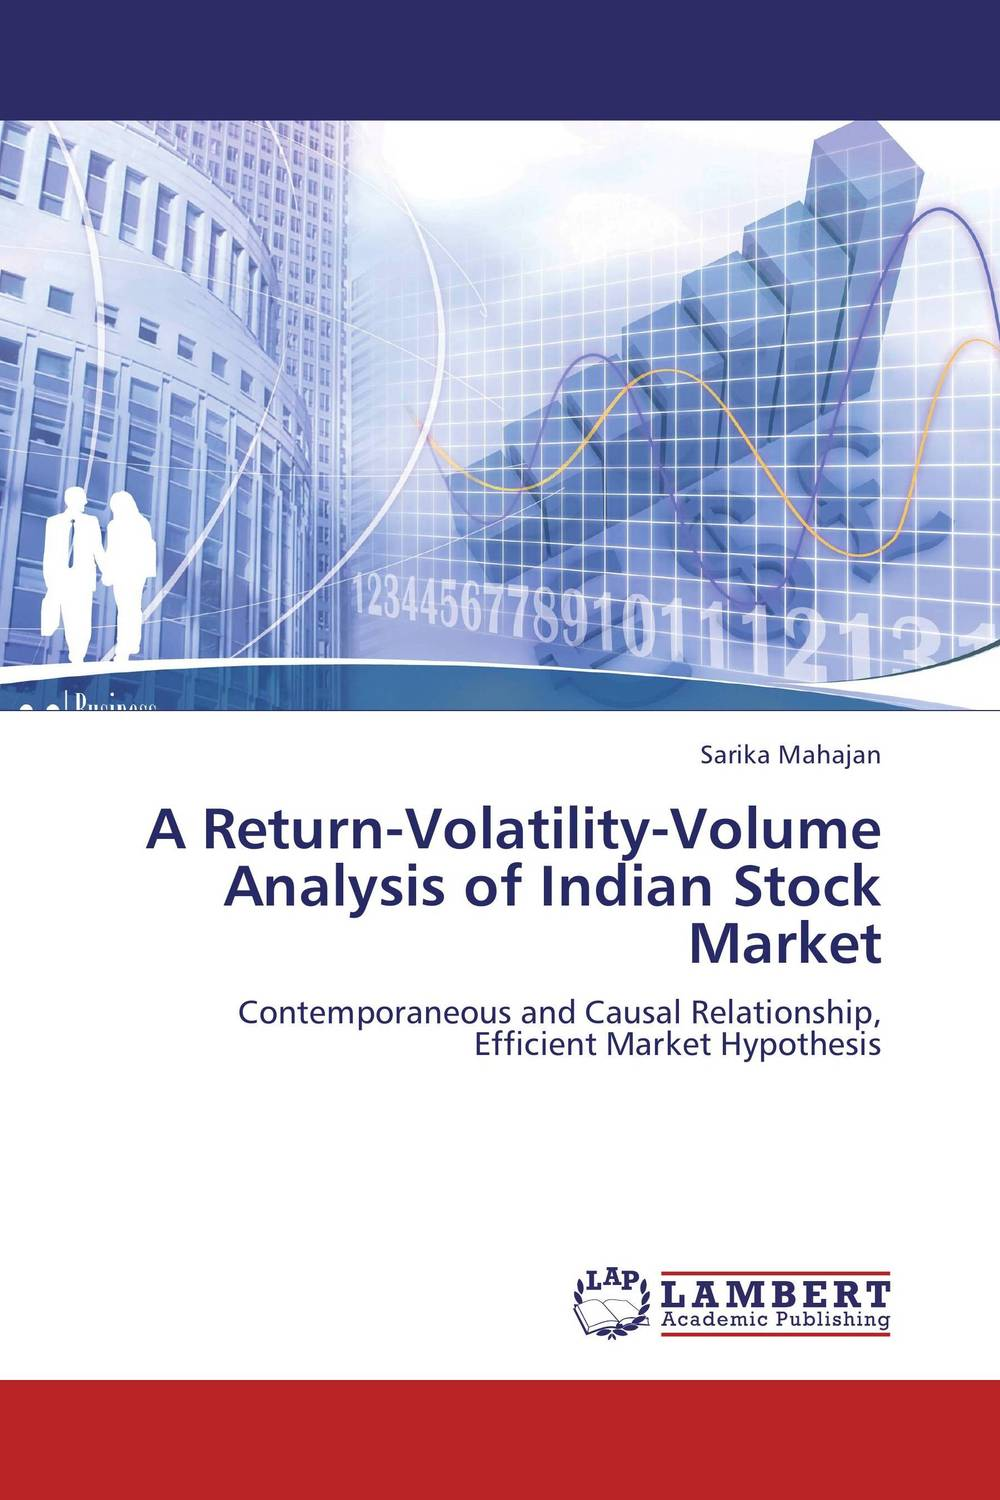 A Return-Volatility-Volume Analysis of Indian Stock Market pretimaya samanta futures trading and spot market volatility in india